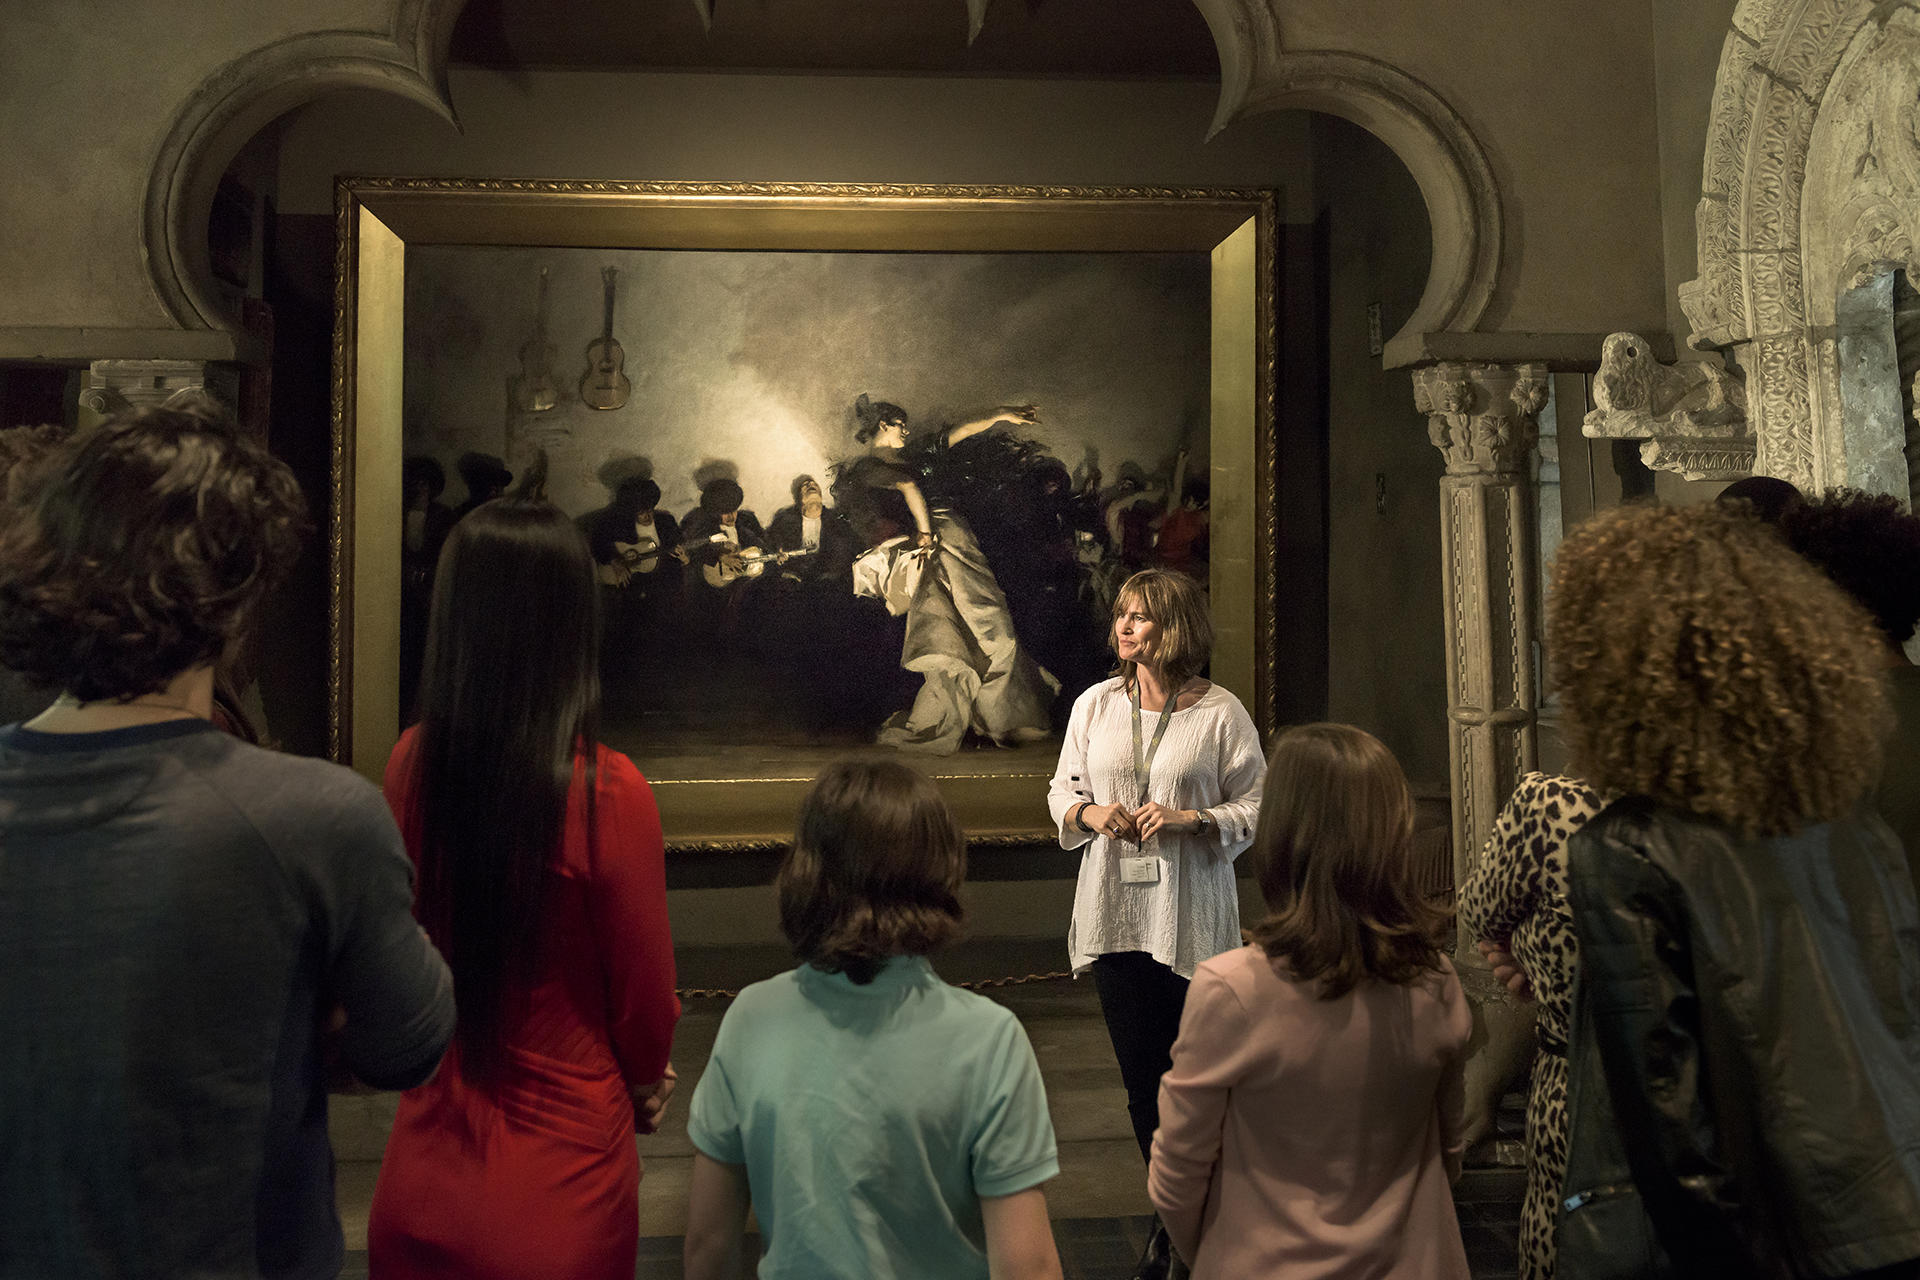 A Museum Teacher leads a tour in the historic Palace